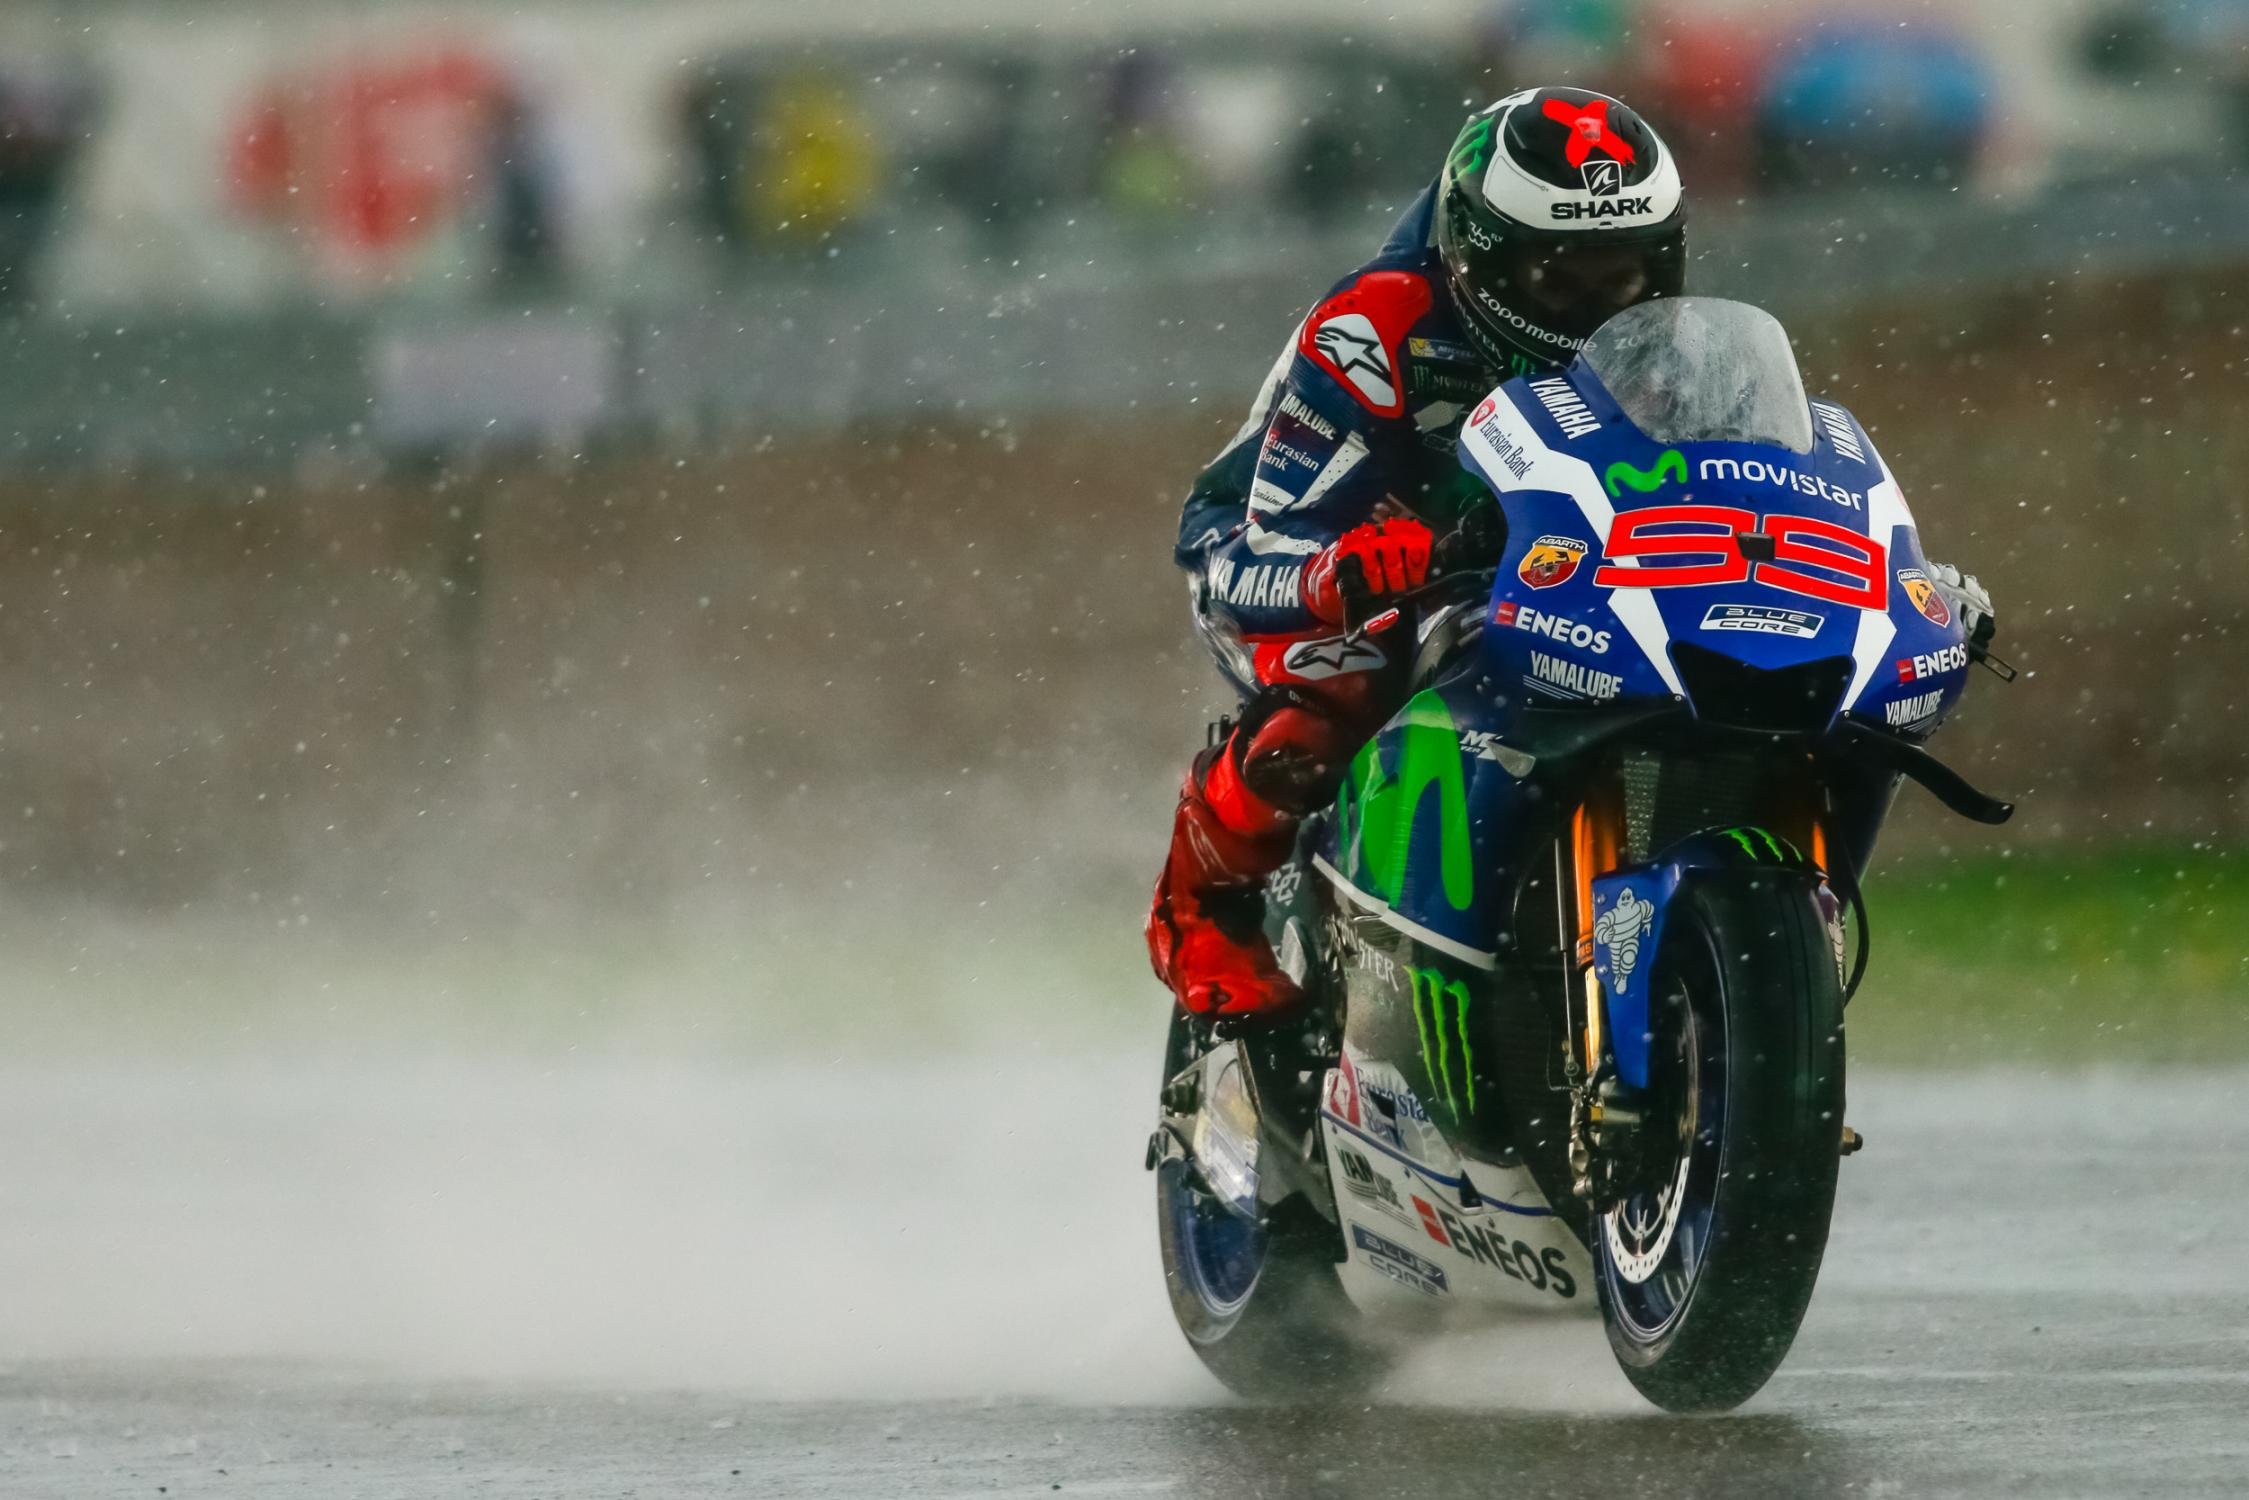 [GP] Assen 99-jorge-lorenzo-esp_gp_8546.gallery_full_top_fullscreen